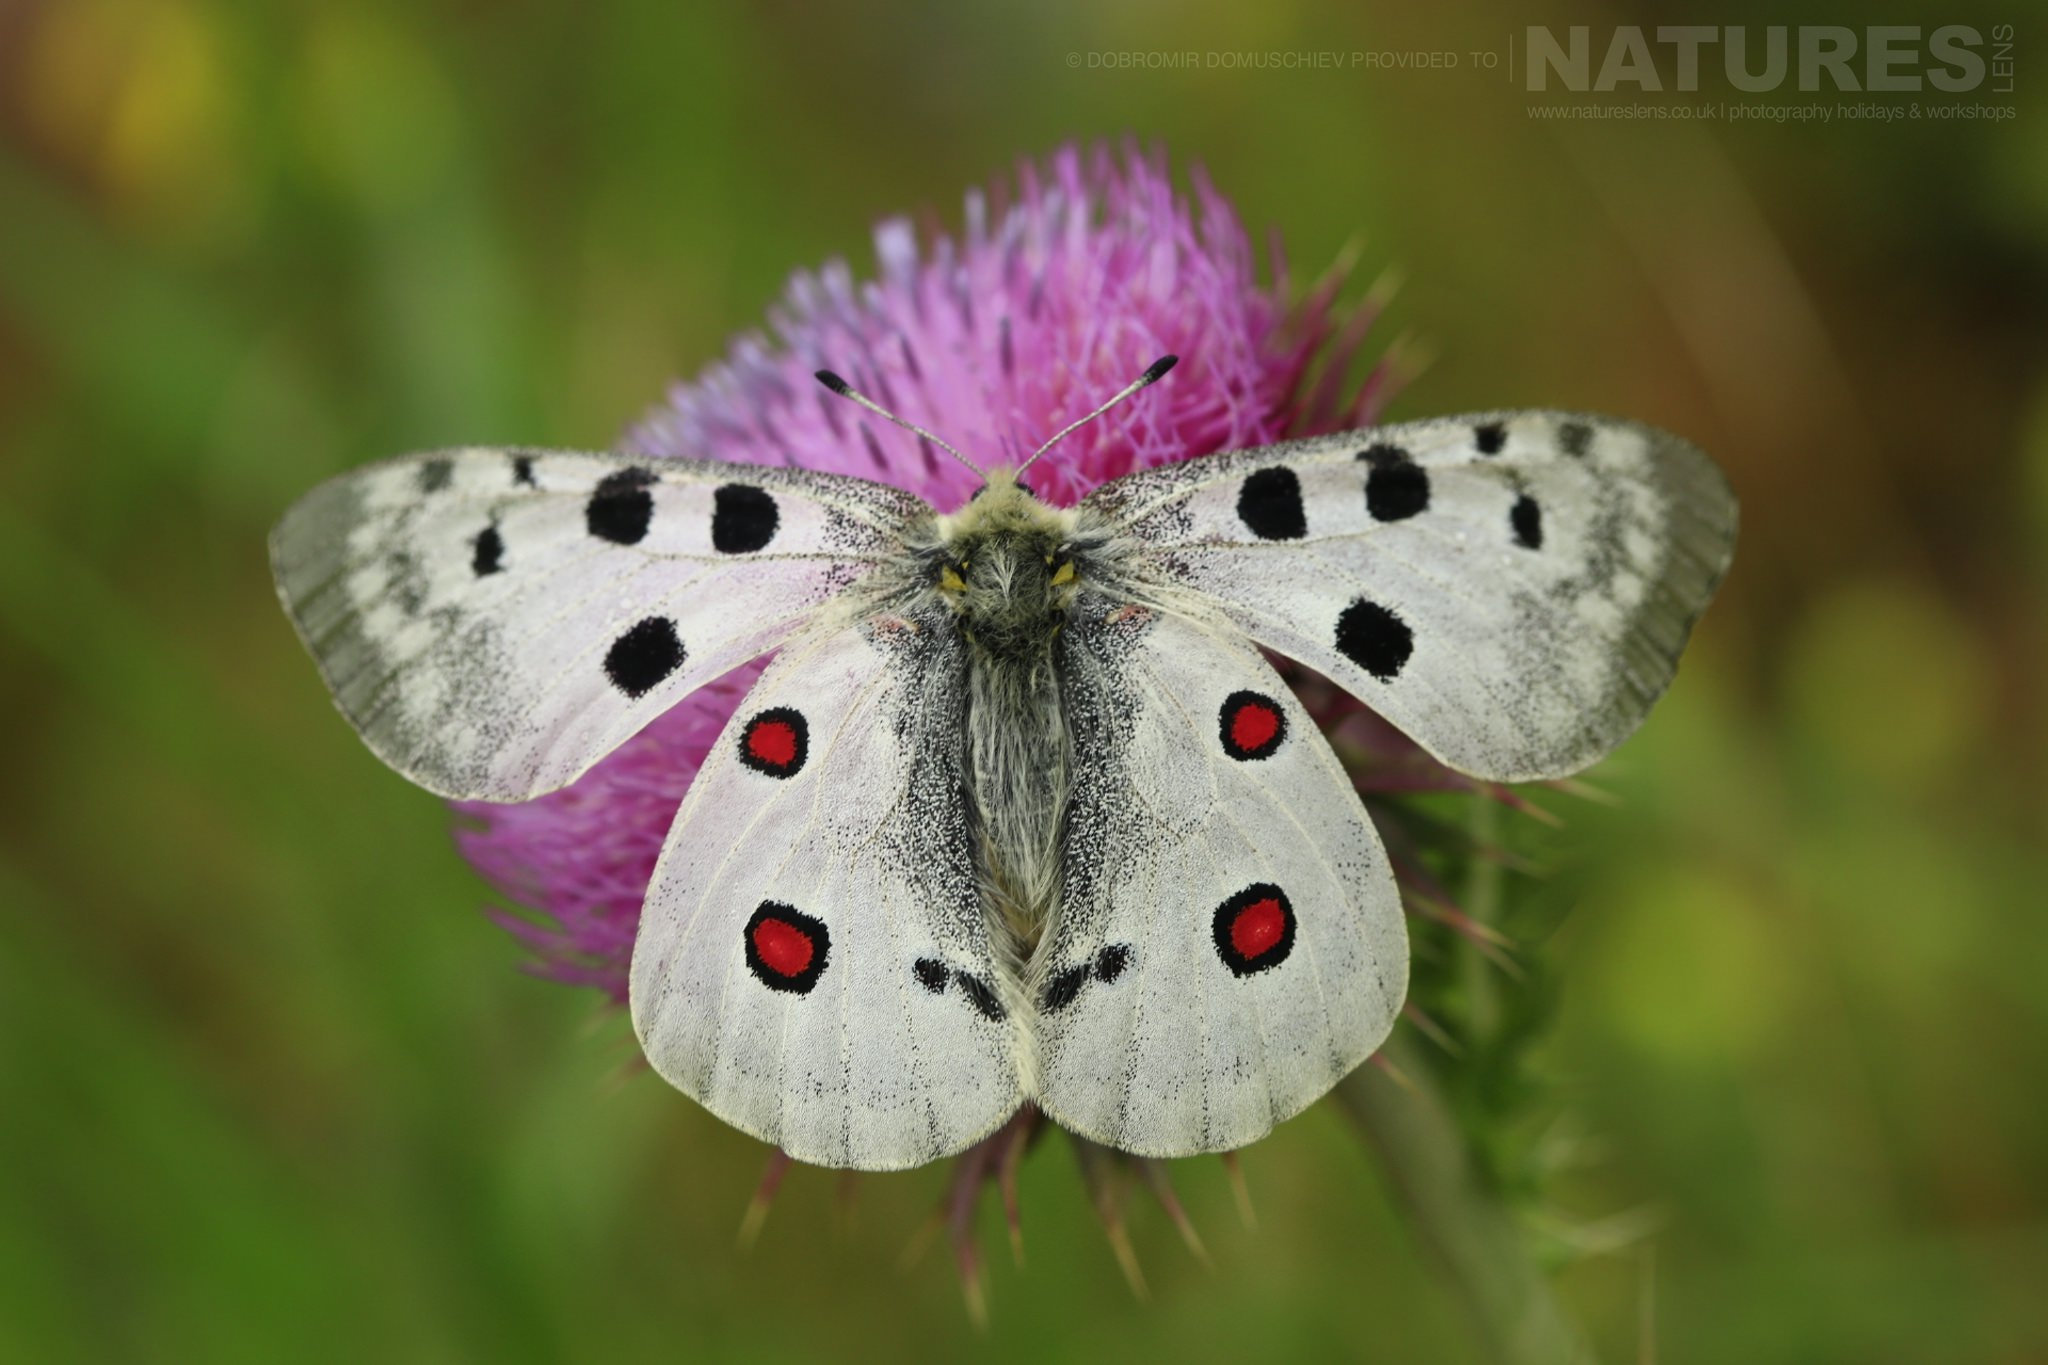 One Of The Apollo Butterflies Photographed On A Photography Holiday To The Same Regions As The NaturesLens Butterflies & Macro Photography Of Bulgaria Photography Holiday